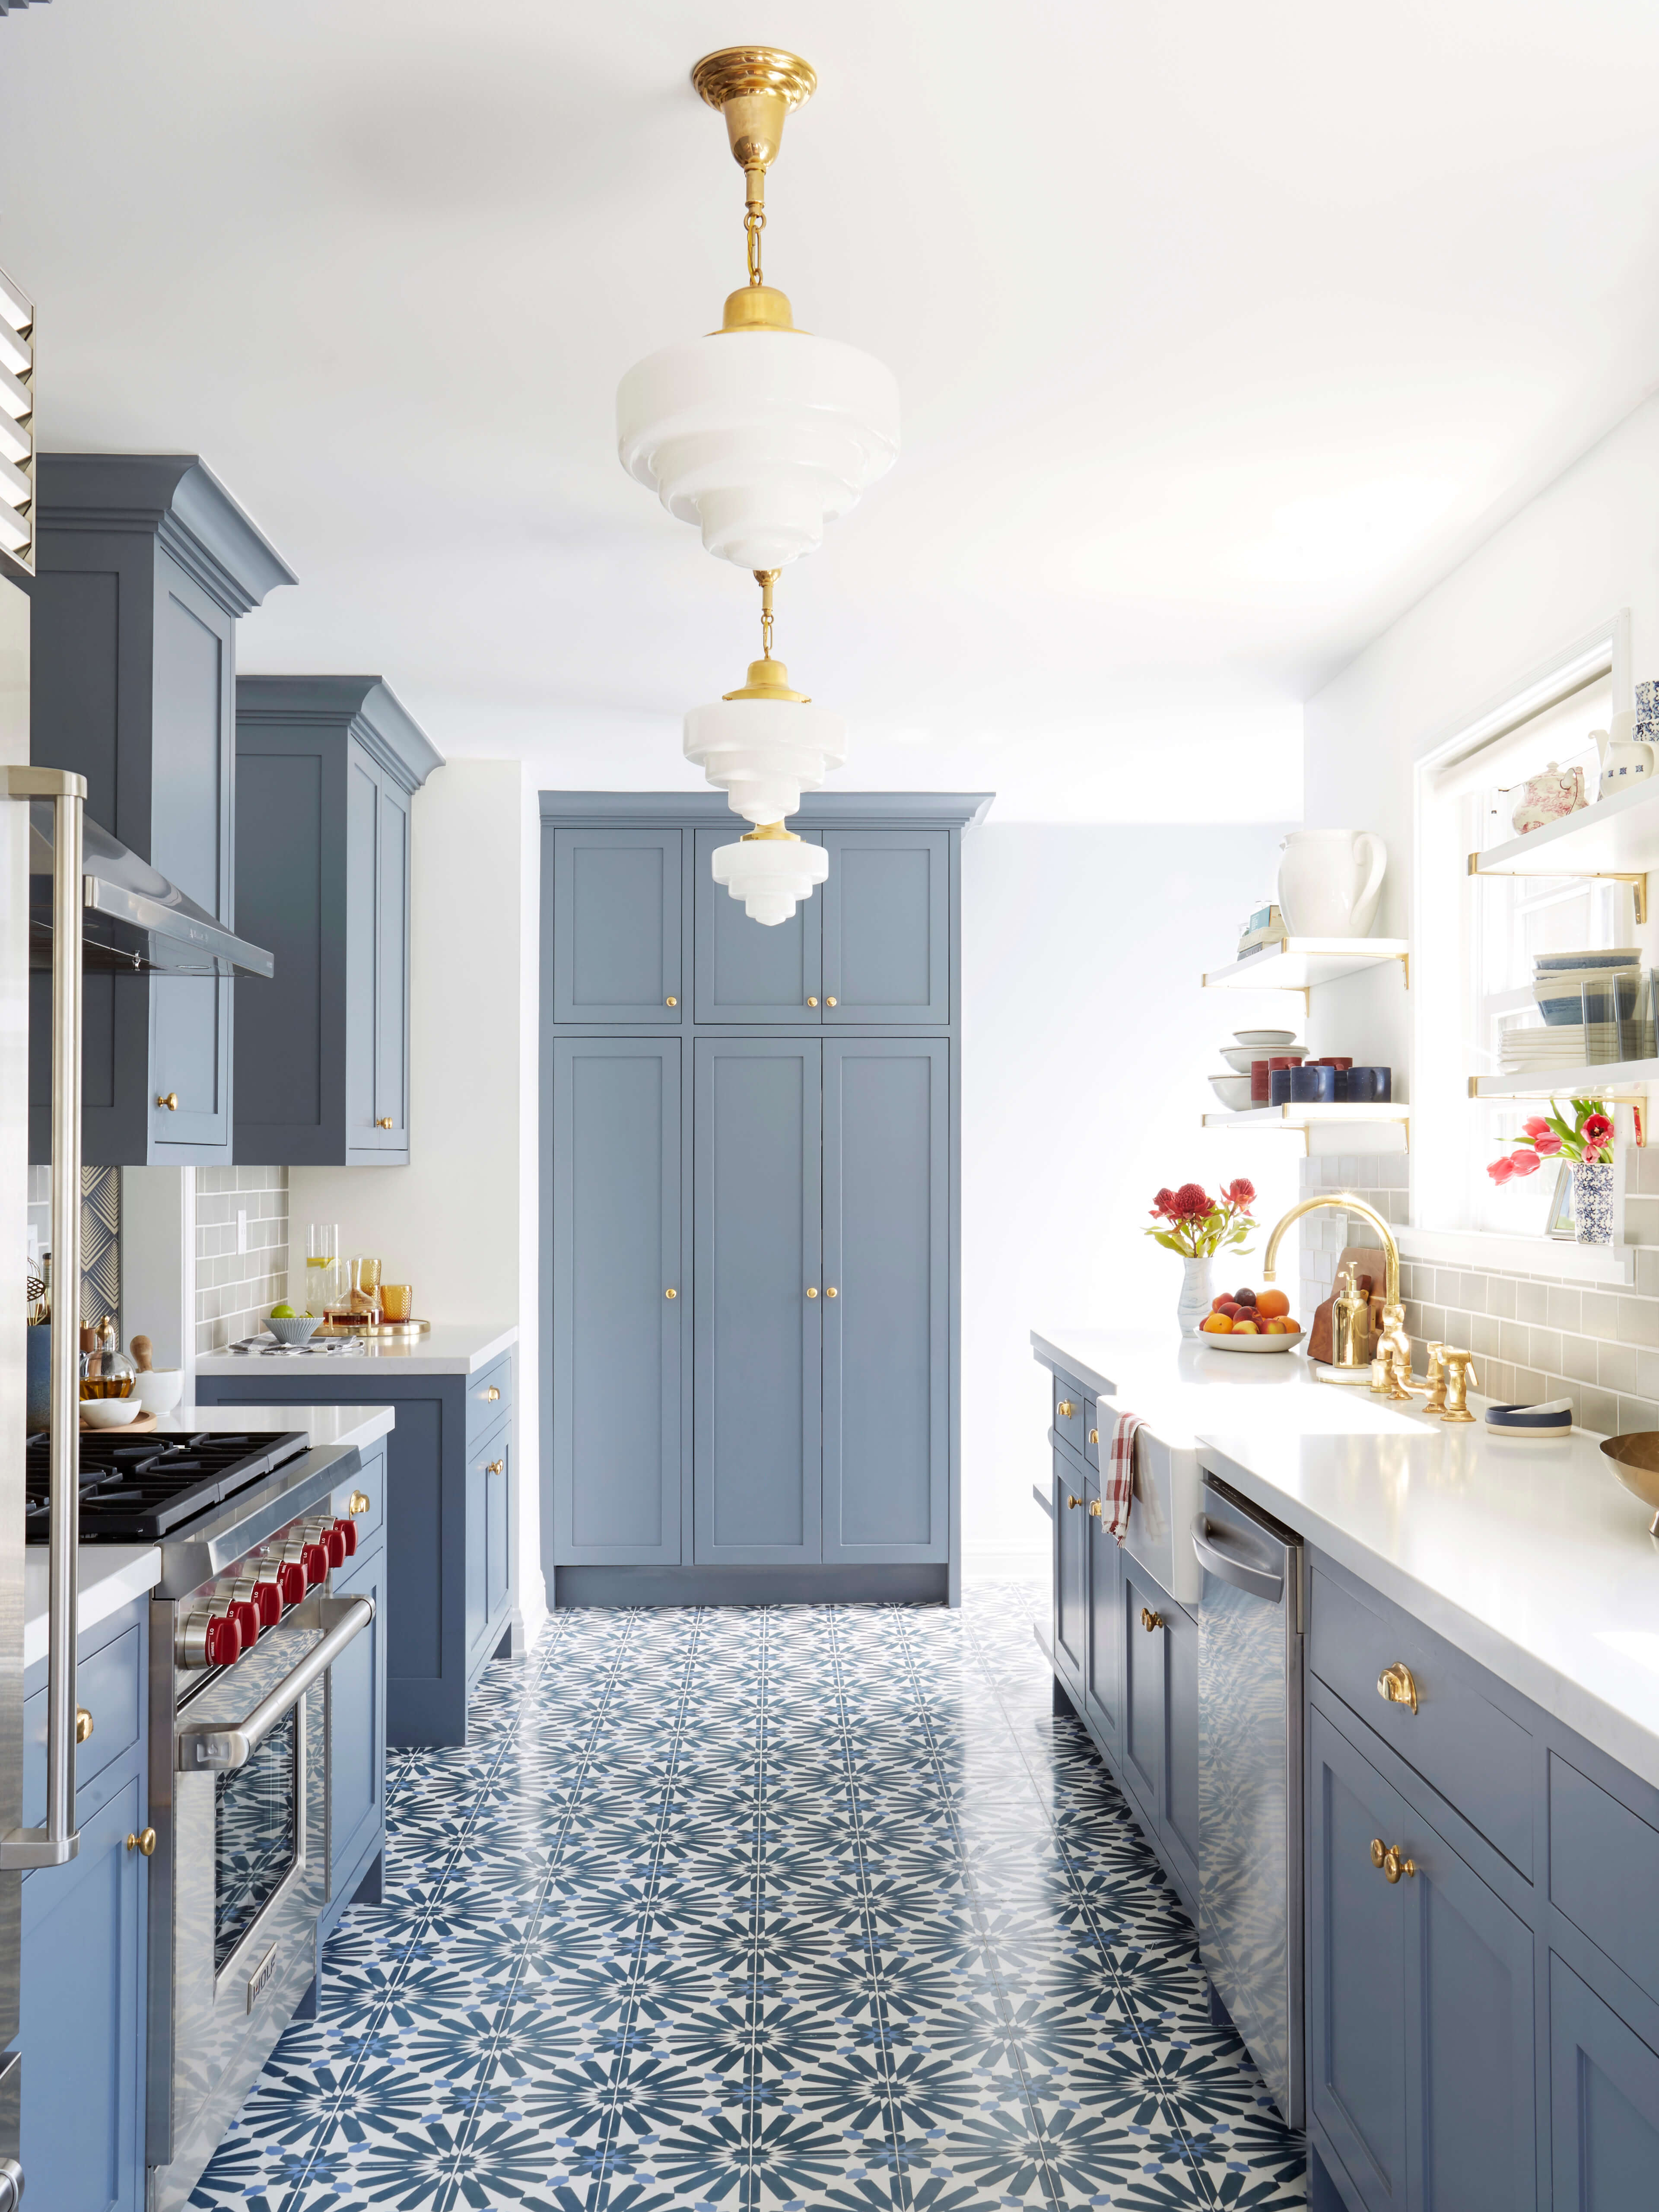 Hands Down, the Best Kitchen Cabinet Pulls at Home Depot | MyDomaine